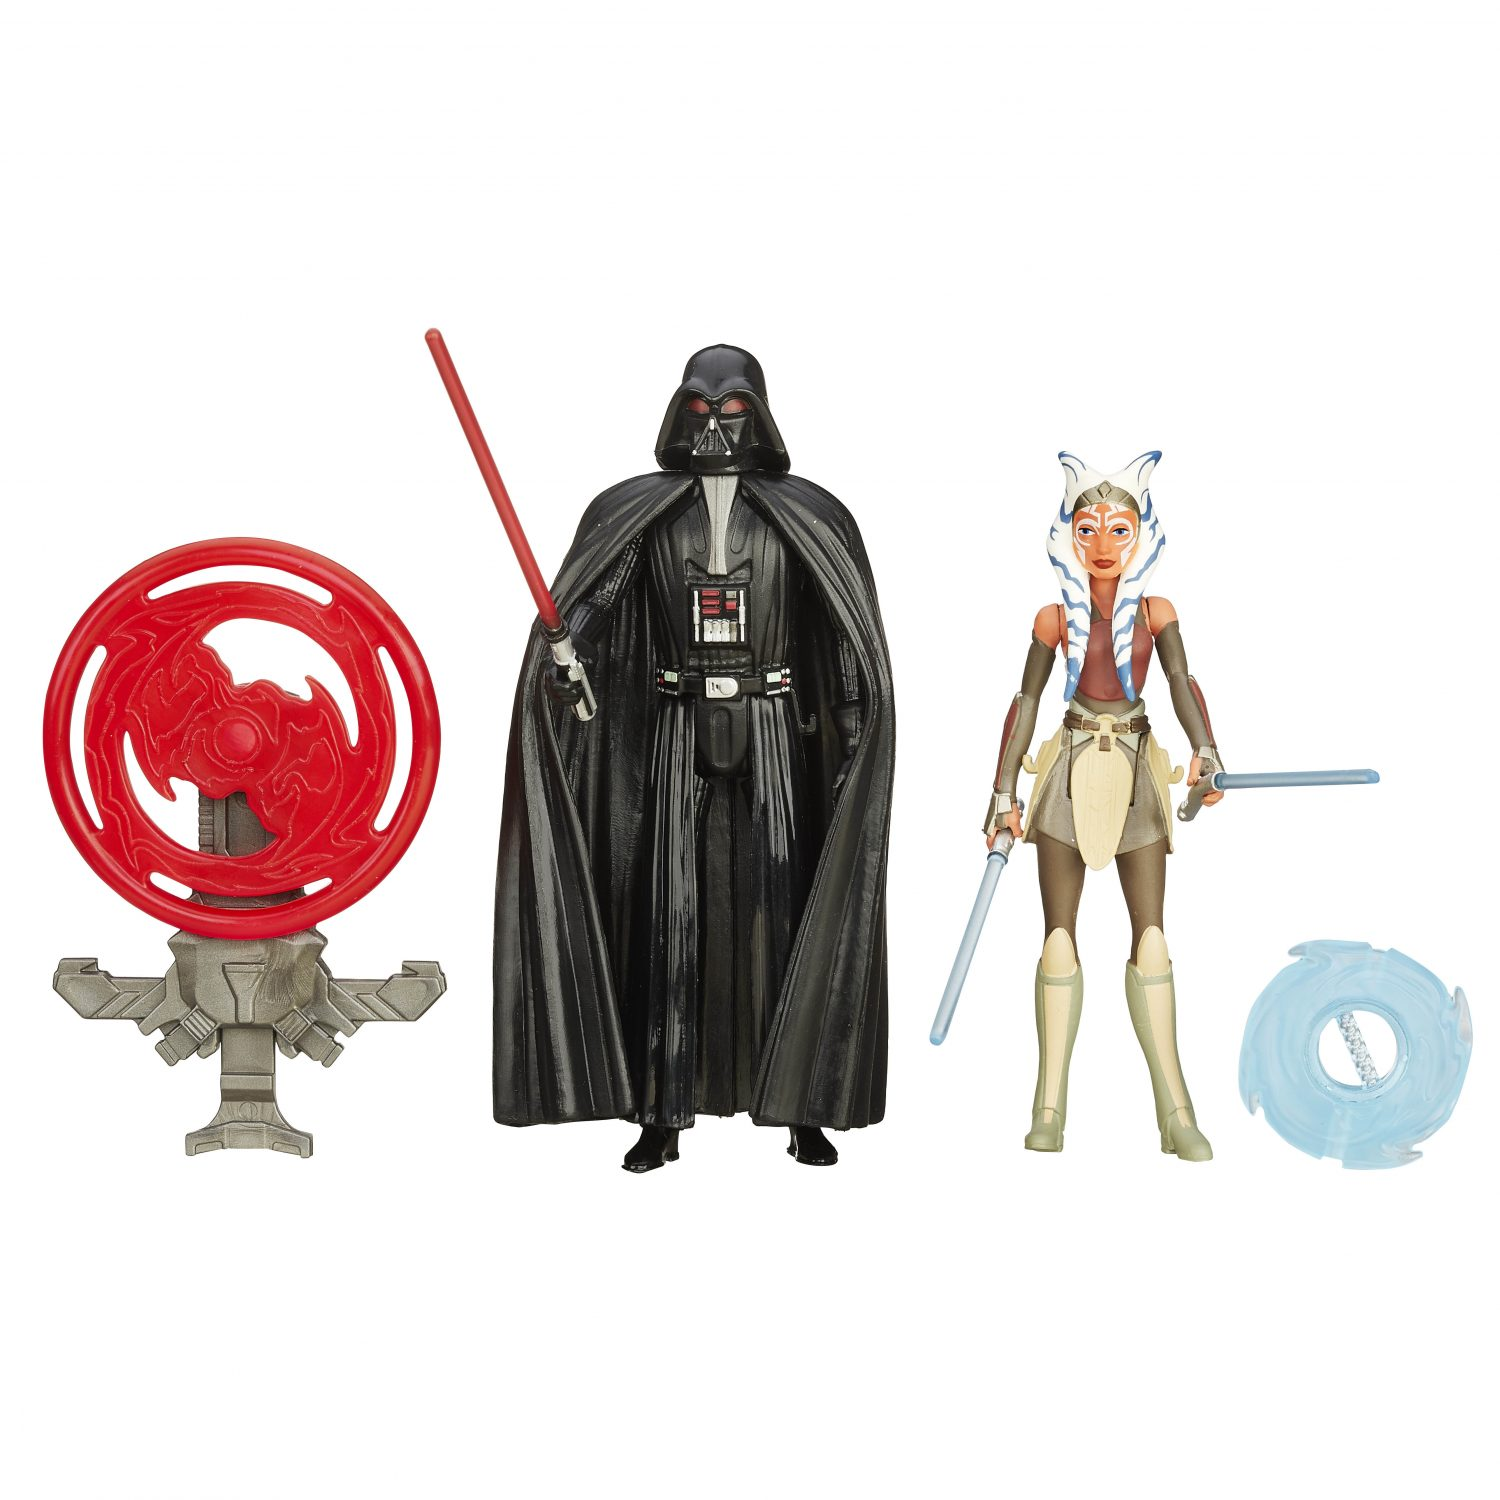 Hasbro Star Wars The Force Awakens Two-Packs Back In Stock At Amazon